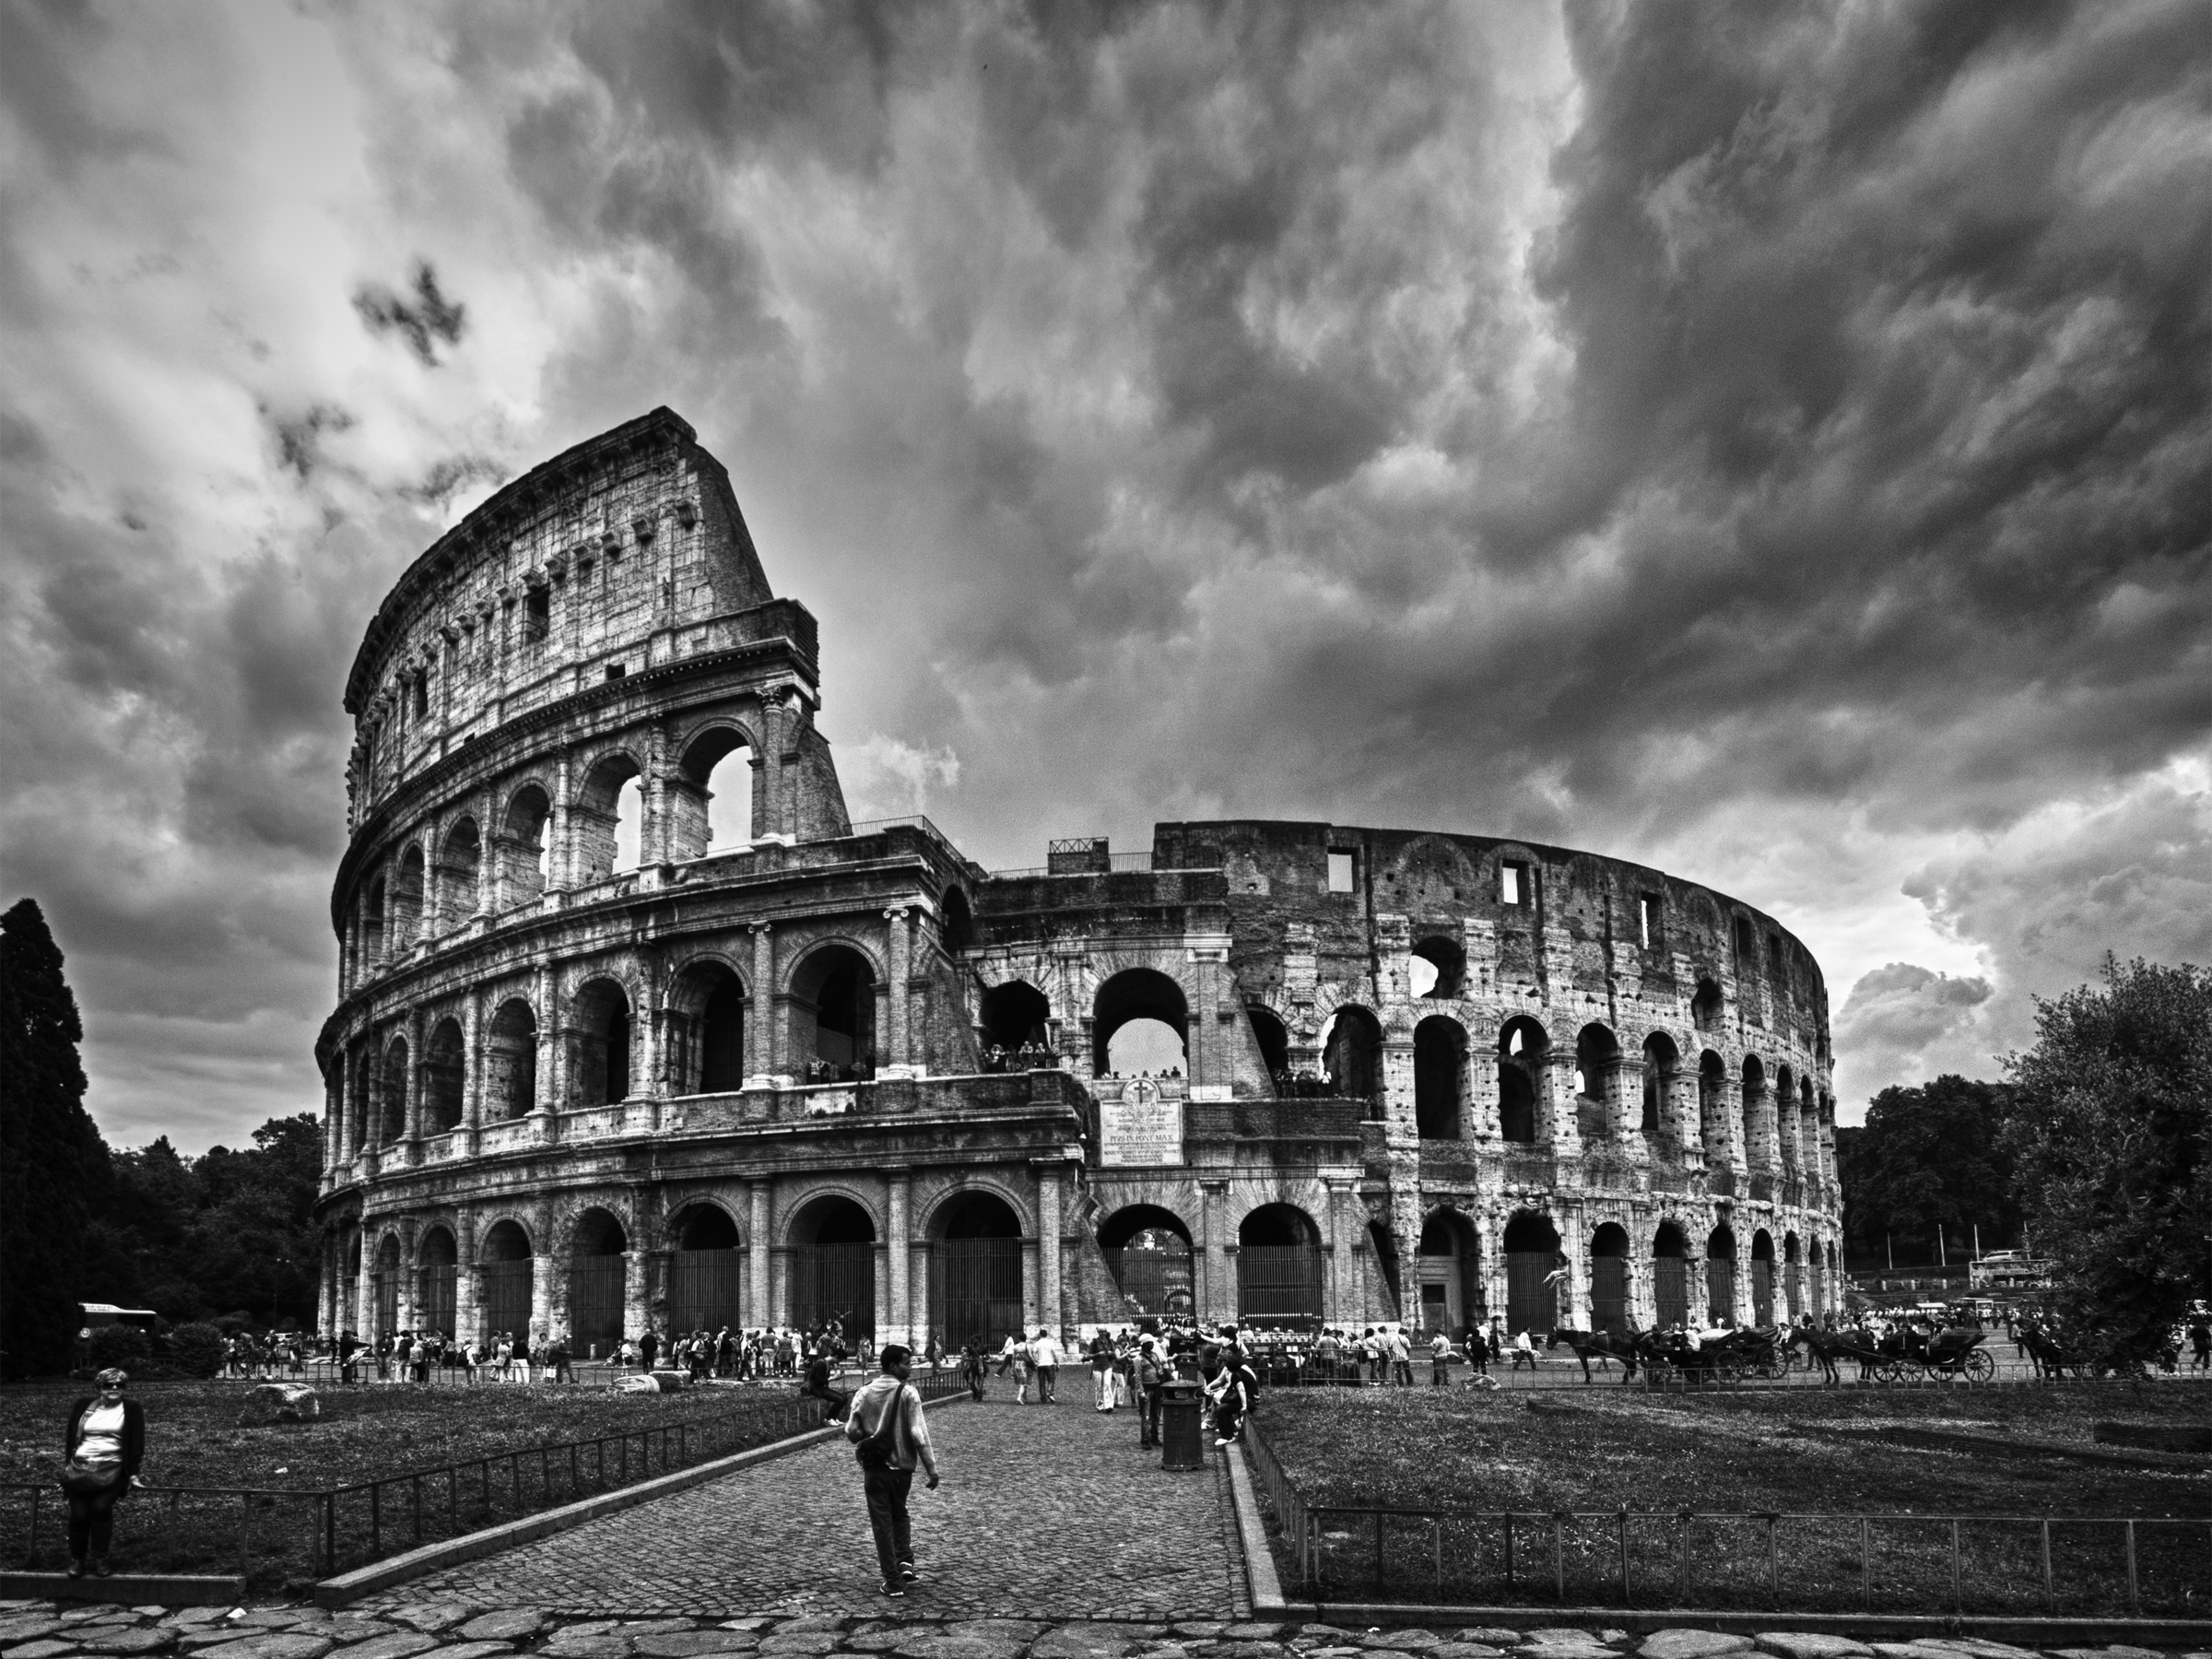 Christian Fall Iphone Wallpaper The Colosseum Rome Flickr Photo Sharing